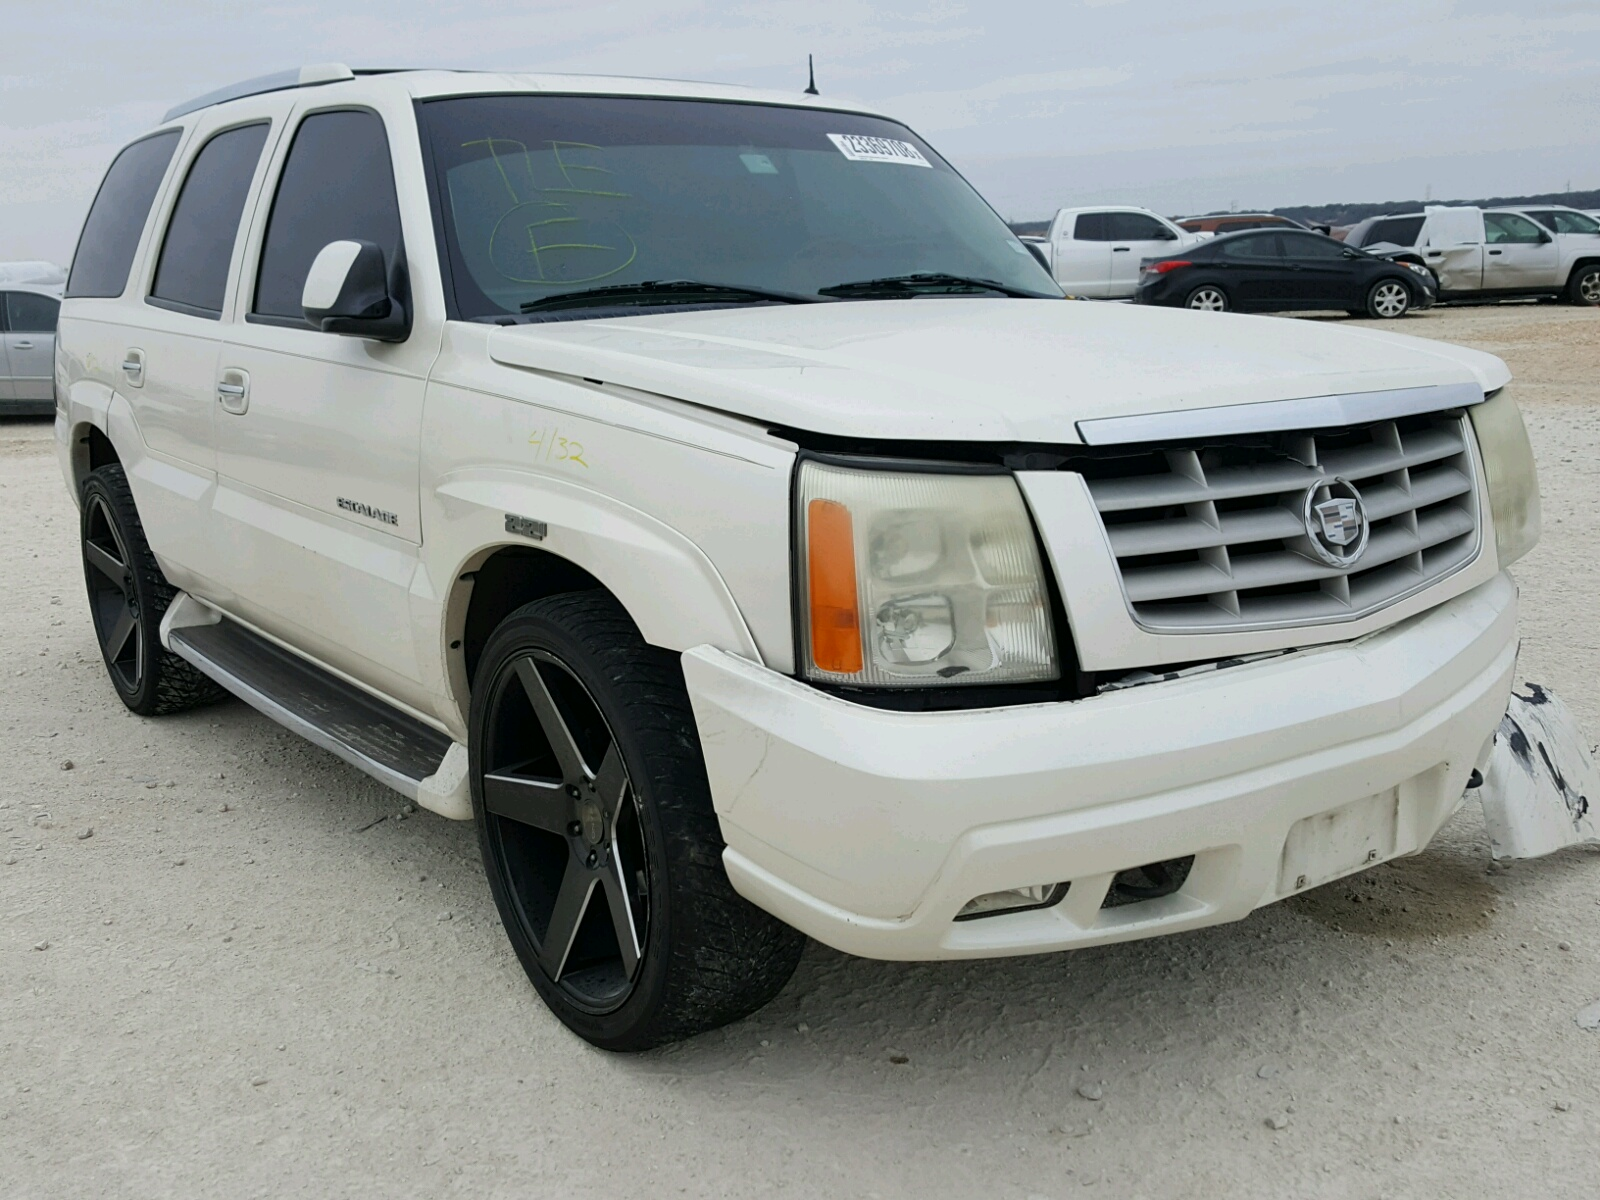 vehicle in sale vehicles vancouver cadillac richmond for escalade bc vehiclesearchresults photo